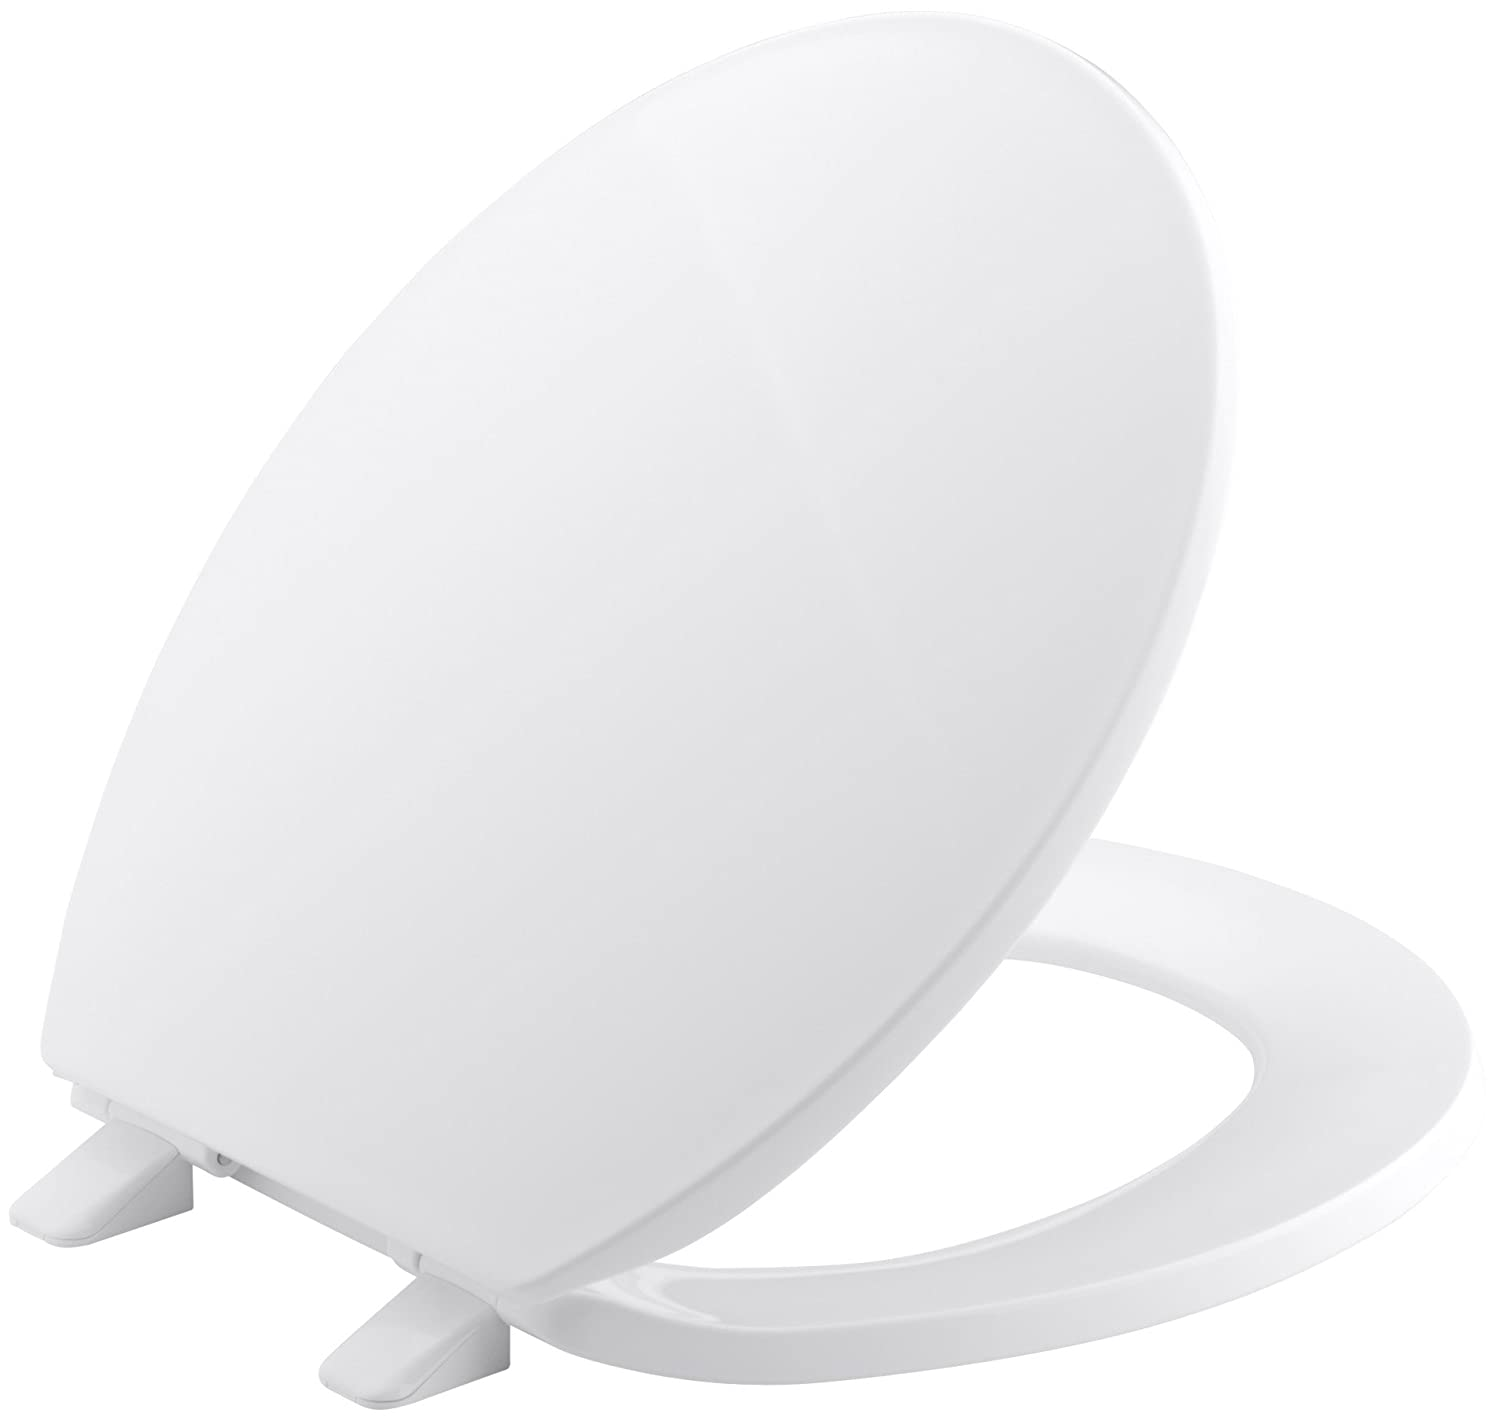 Stupendous Kohler K 4775 0 Brevia With Quick Release Hinges Round Front Toilet Seat In White Evergreenethics Interior Chair Design Evergreenethicsorg